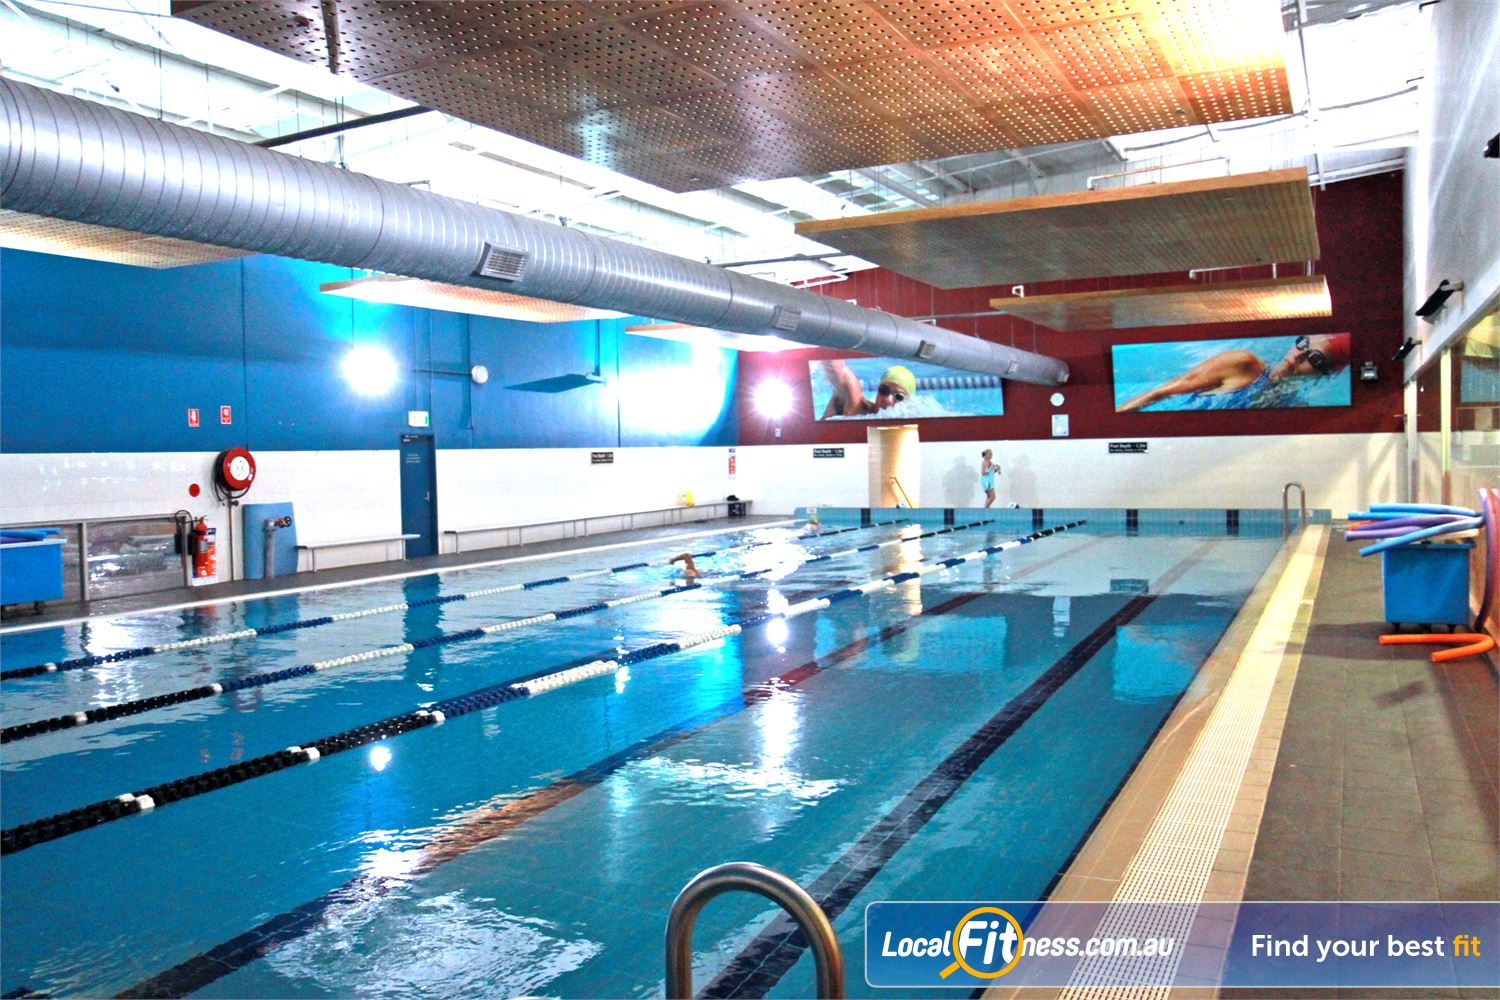 Fitness First Rockdale Our Rockdale Swim School is open to all ages and abilities.